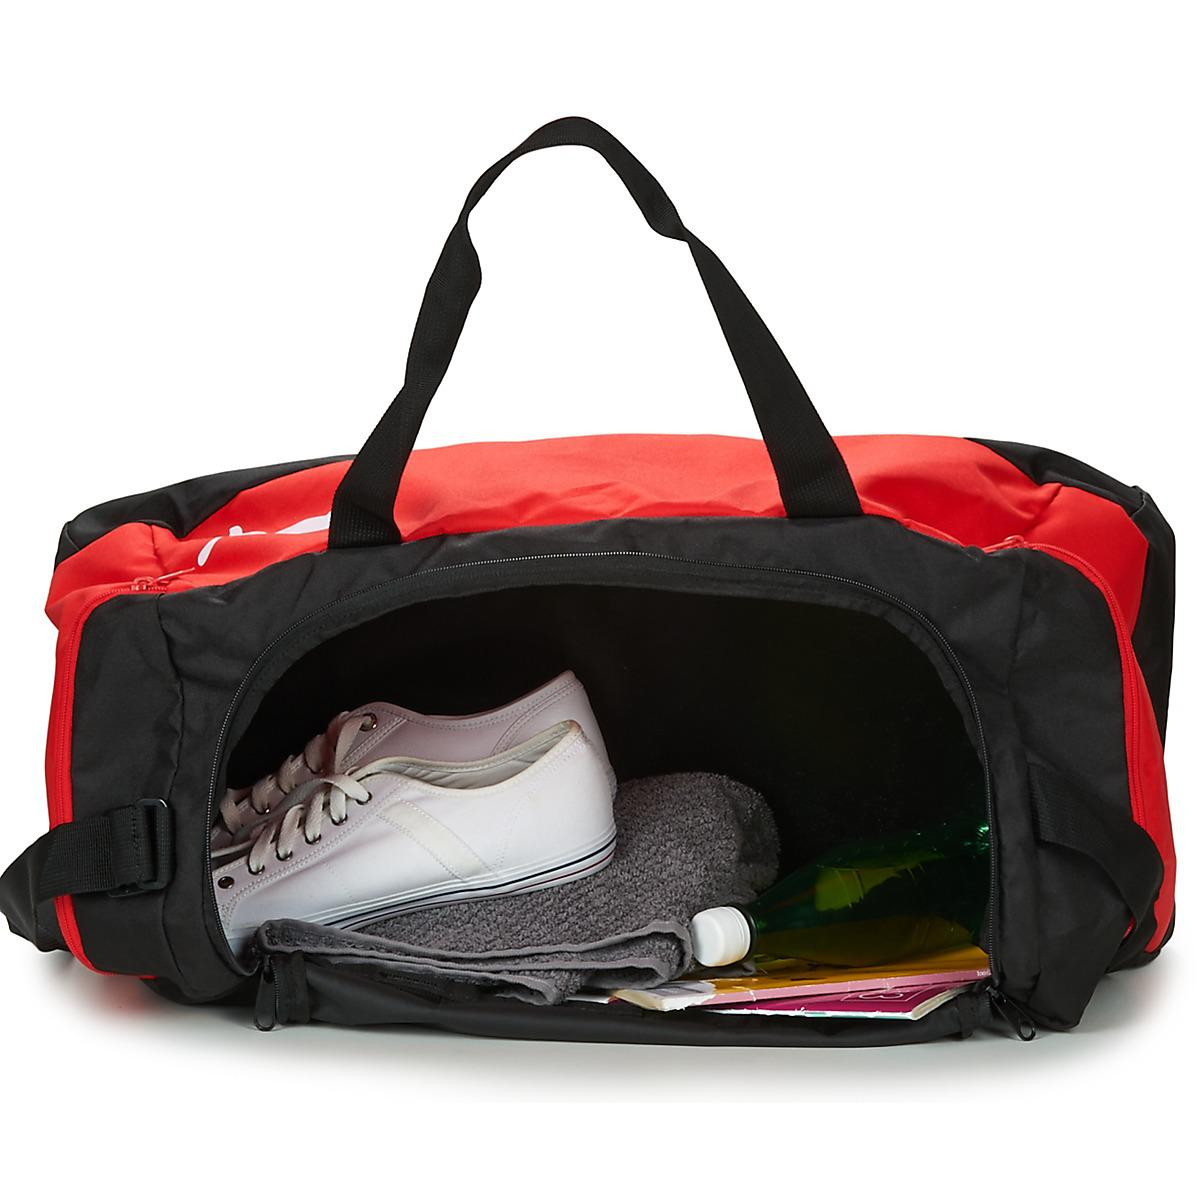 802c9399cf58 PUMA Pro Training Ii Medium Bag Women s Sports Bag In Black in Black ...